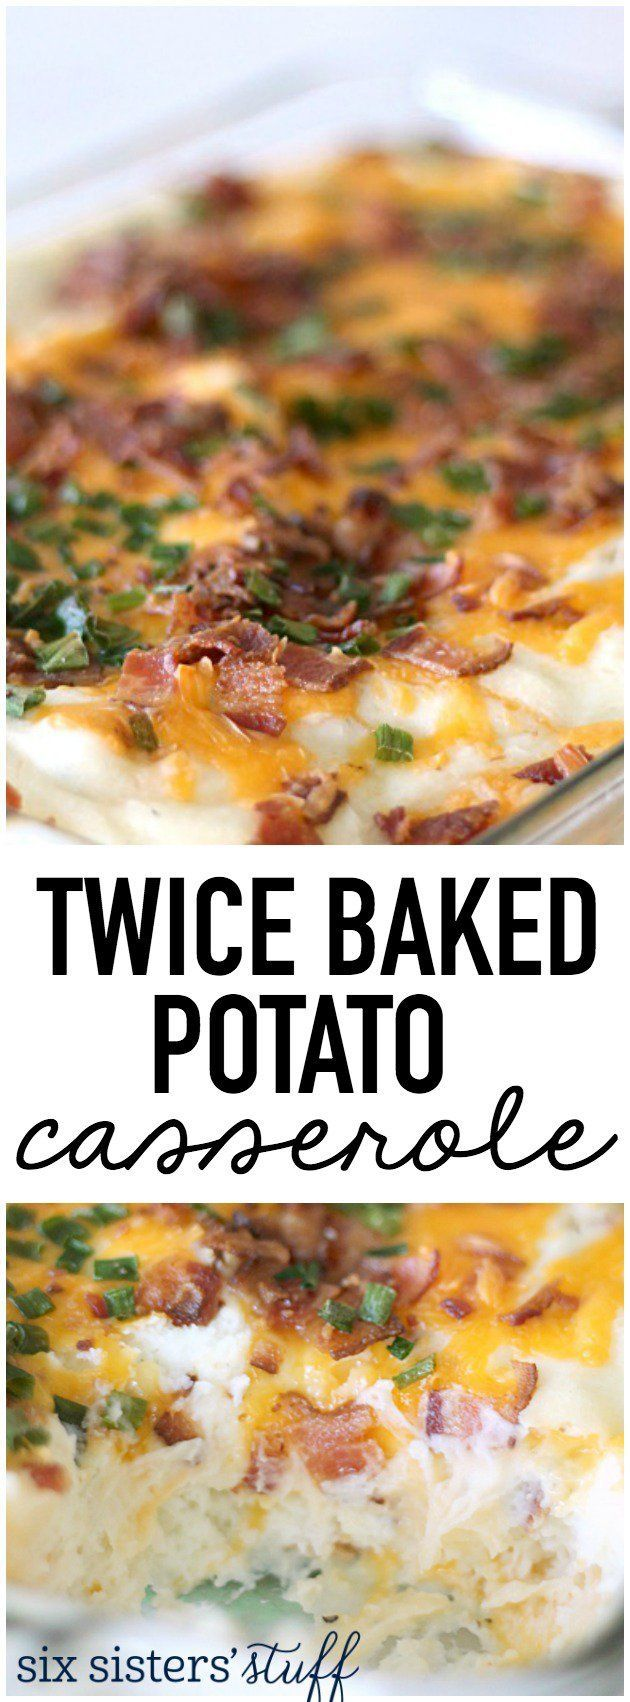 This Twice Baked Potato Casserole from http://SixSistersStuff.com is the most AMAZING…